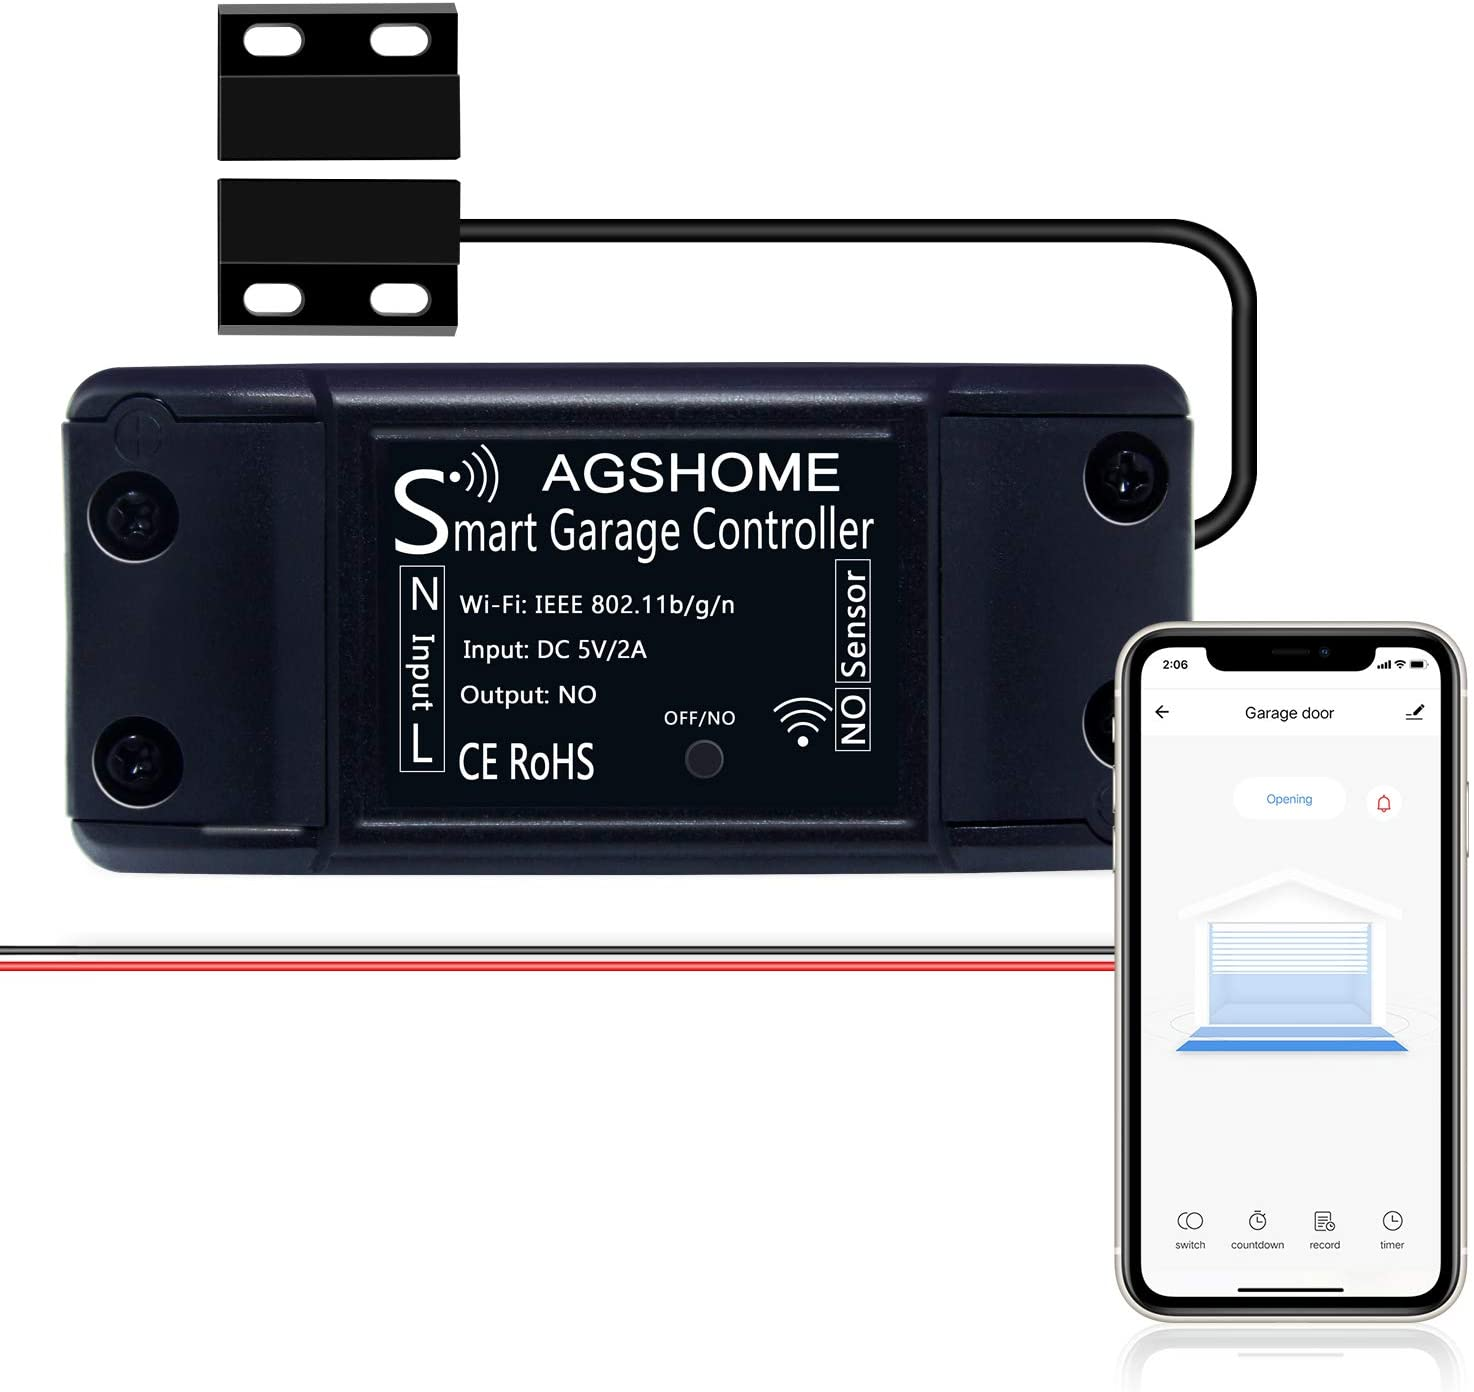 Amazon Com Agshome Smart Wi Fi Garage Door Opener Remote Gate Opener Remote App Control Compatible With Alexa Google Assistant No Hub Needed With Smartphone Control Electronics